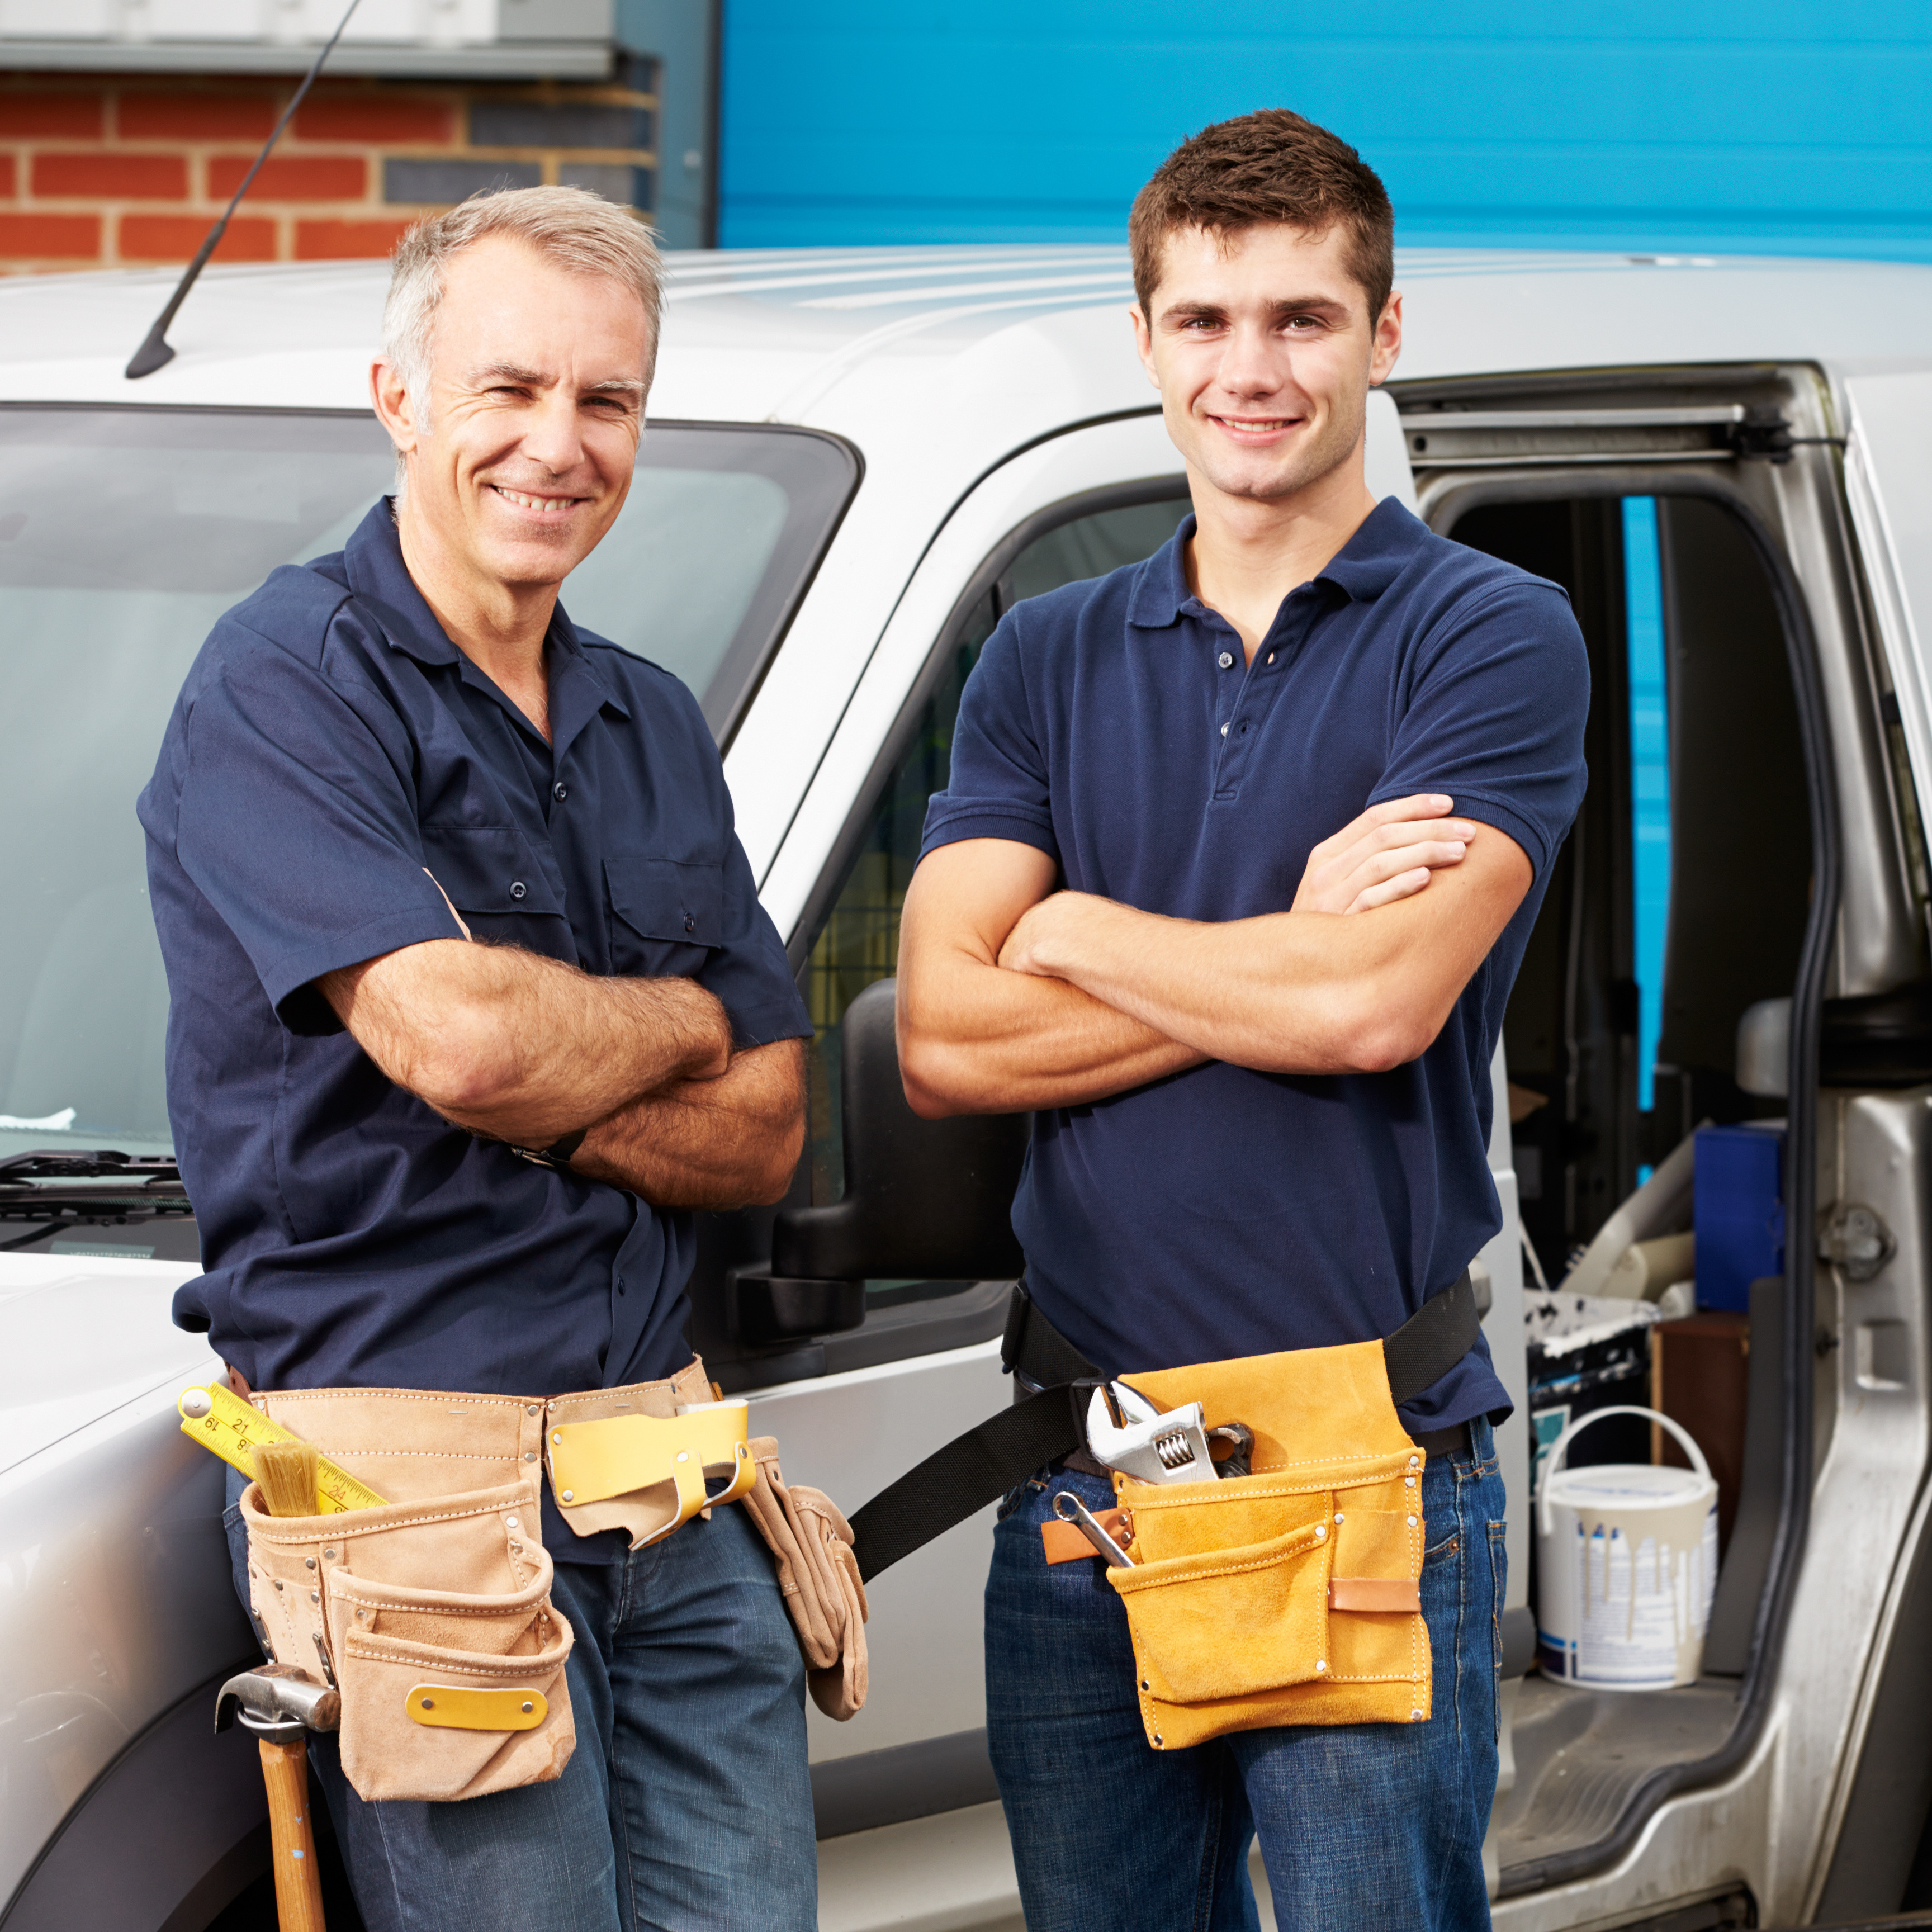 Plumbers standing by their truck